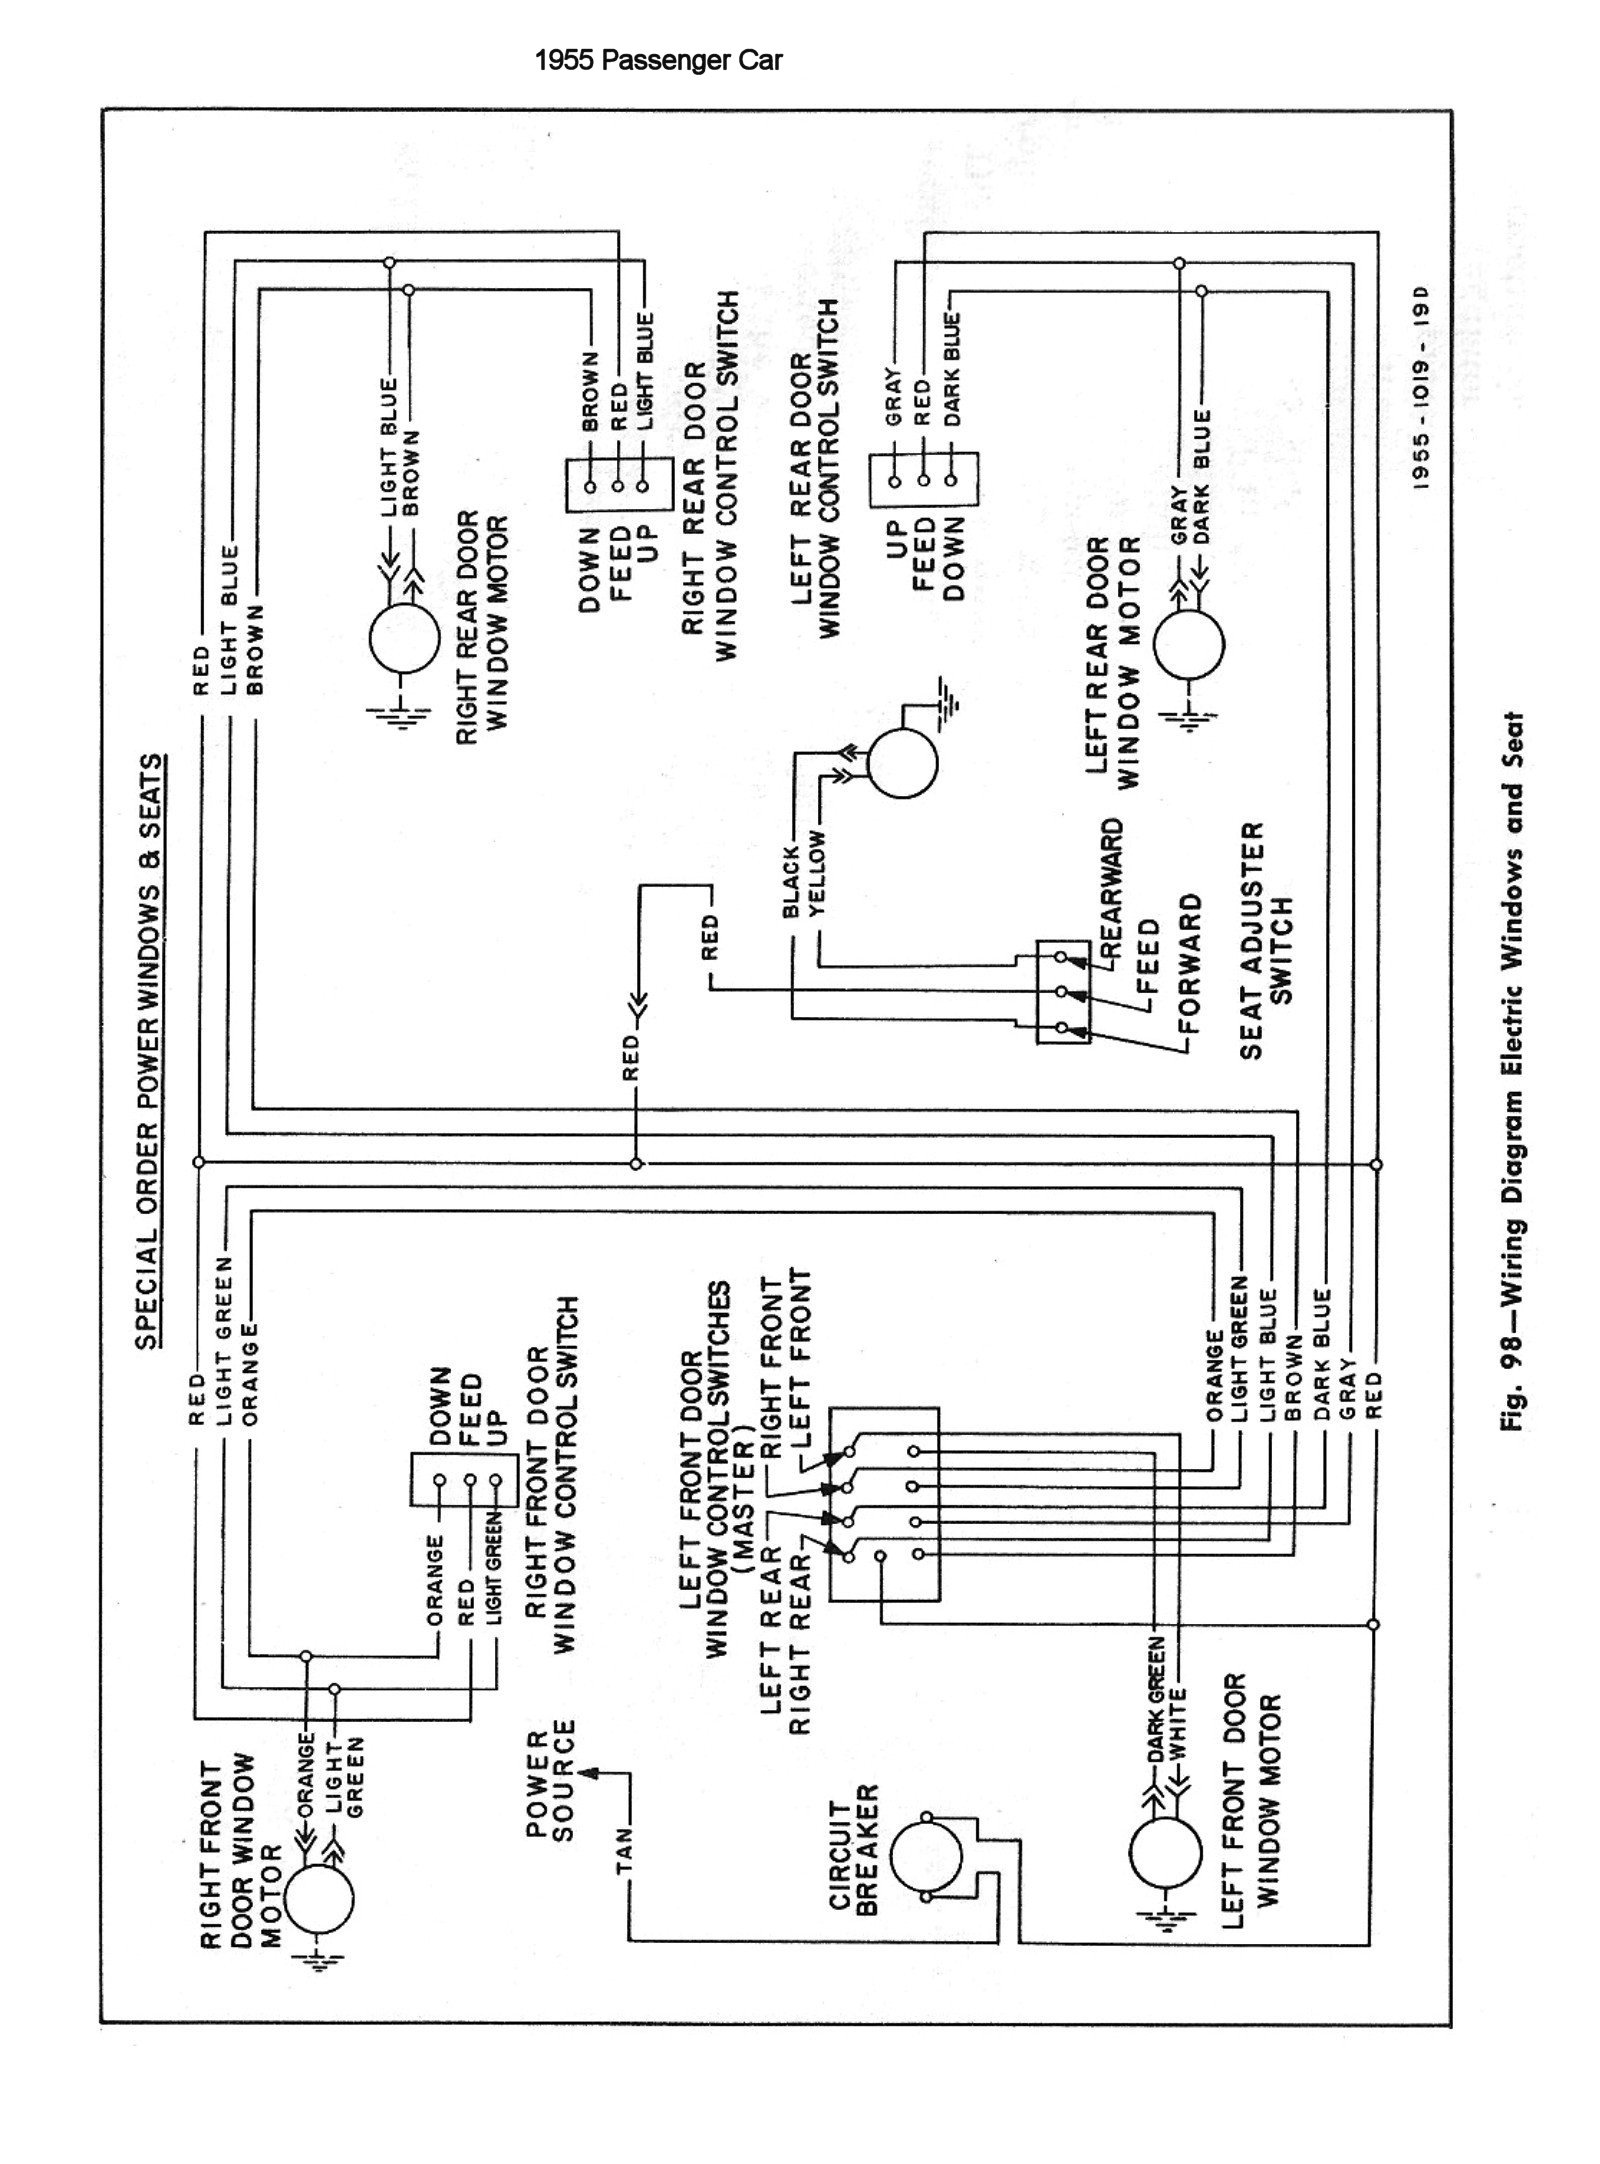 55csm0146 chevy wiring diagrams 1986 chevy truck wiring diagram at alyssarenee.co